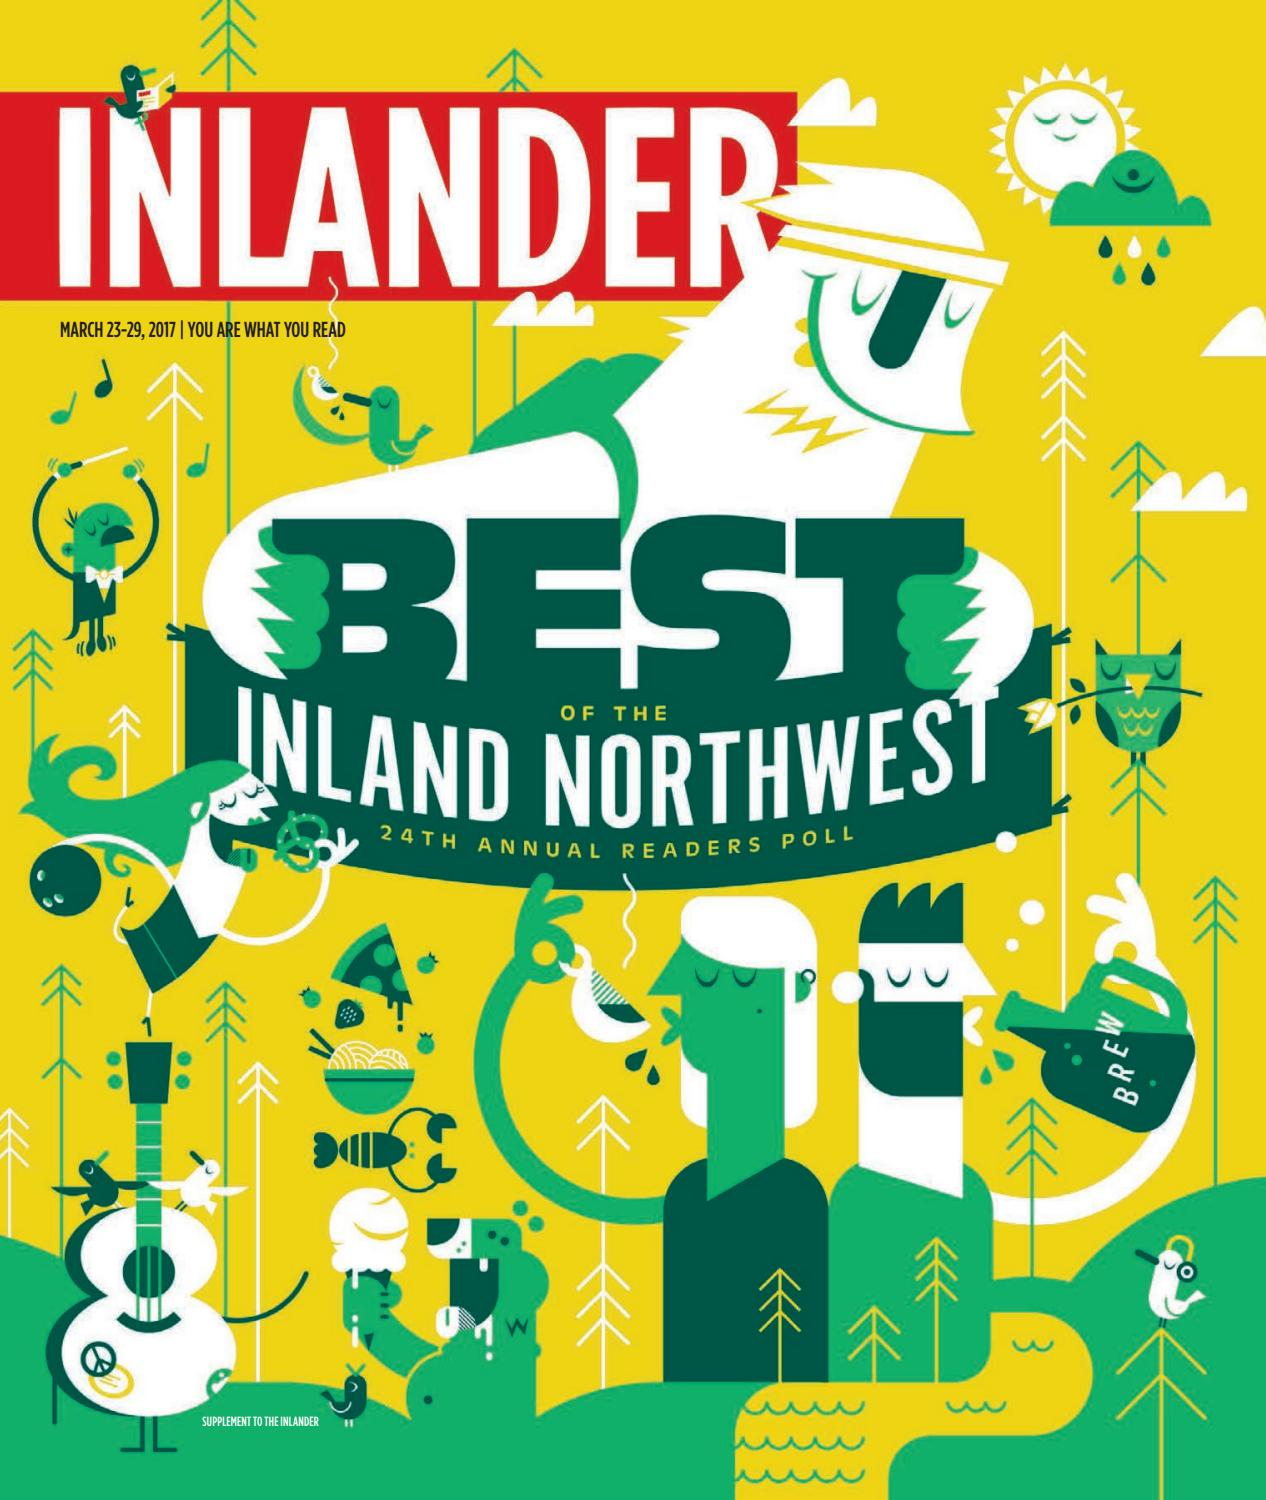 82fd3493139c Inlander 03 23 2017 by The Inlander - issuu